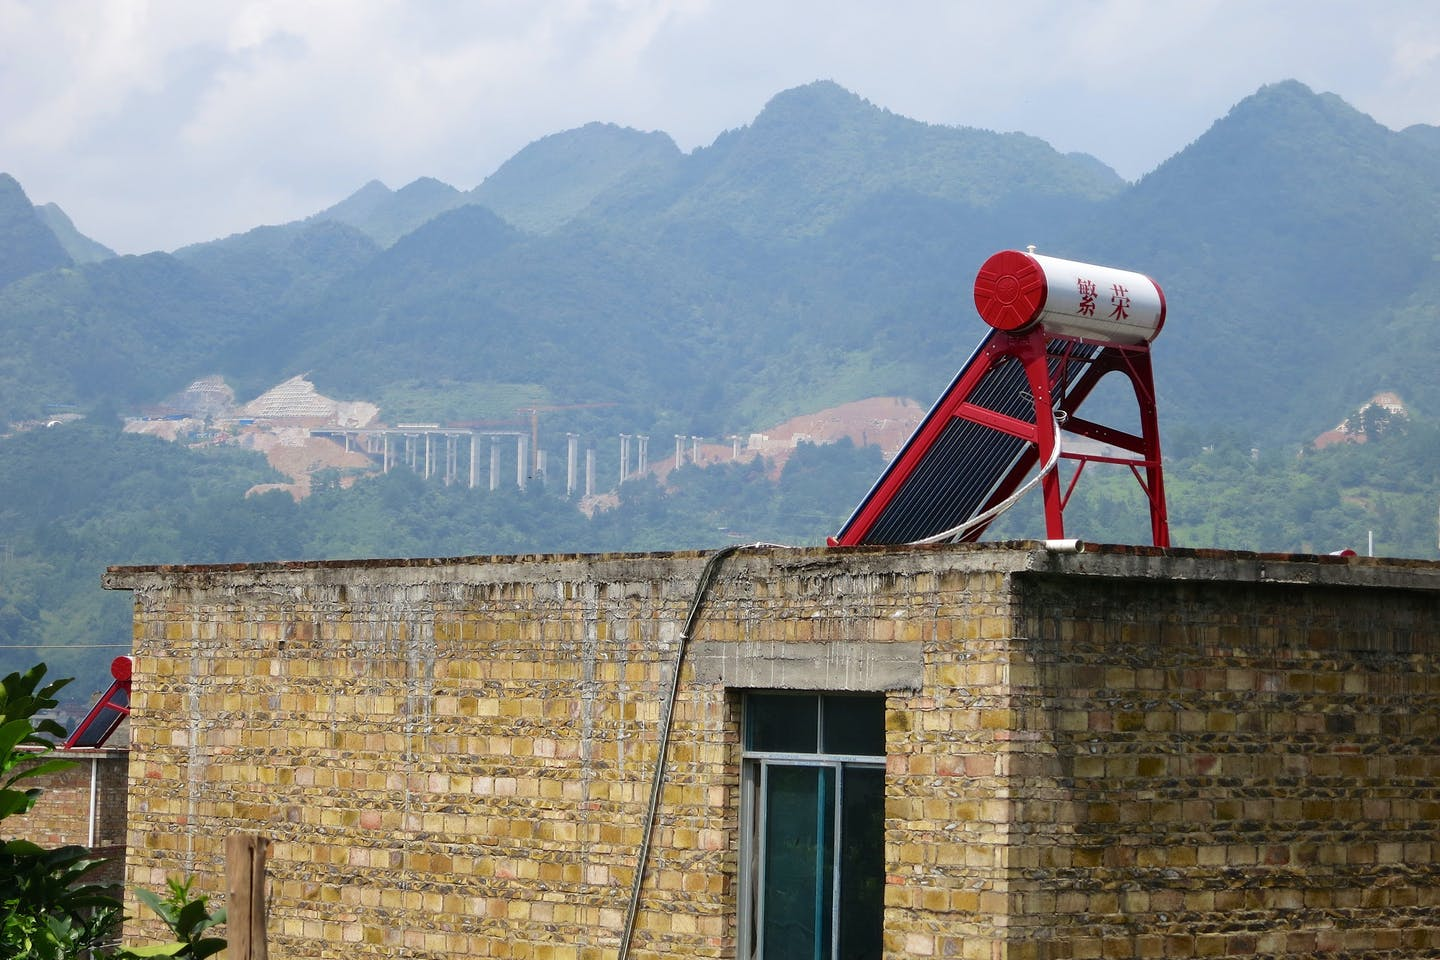 Solar panel in a once-isolated region in Southwest China